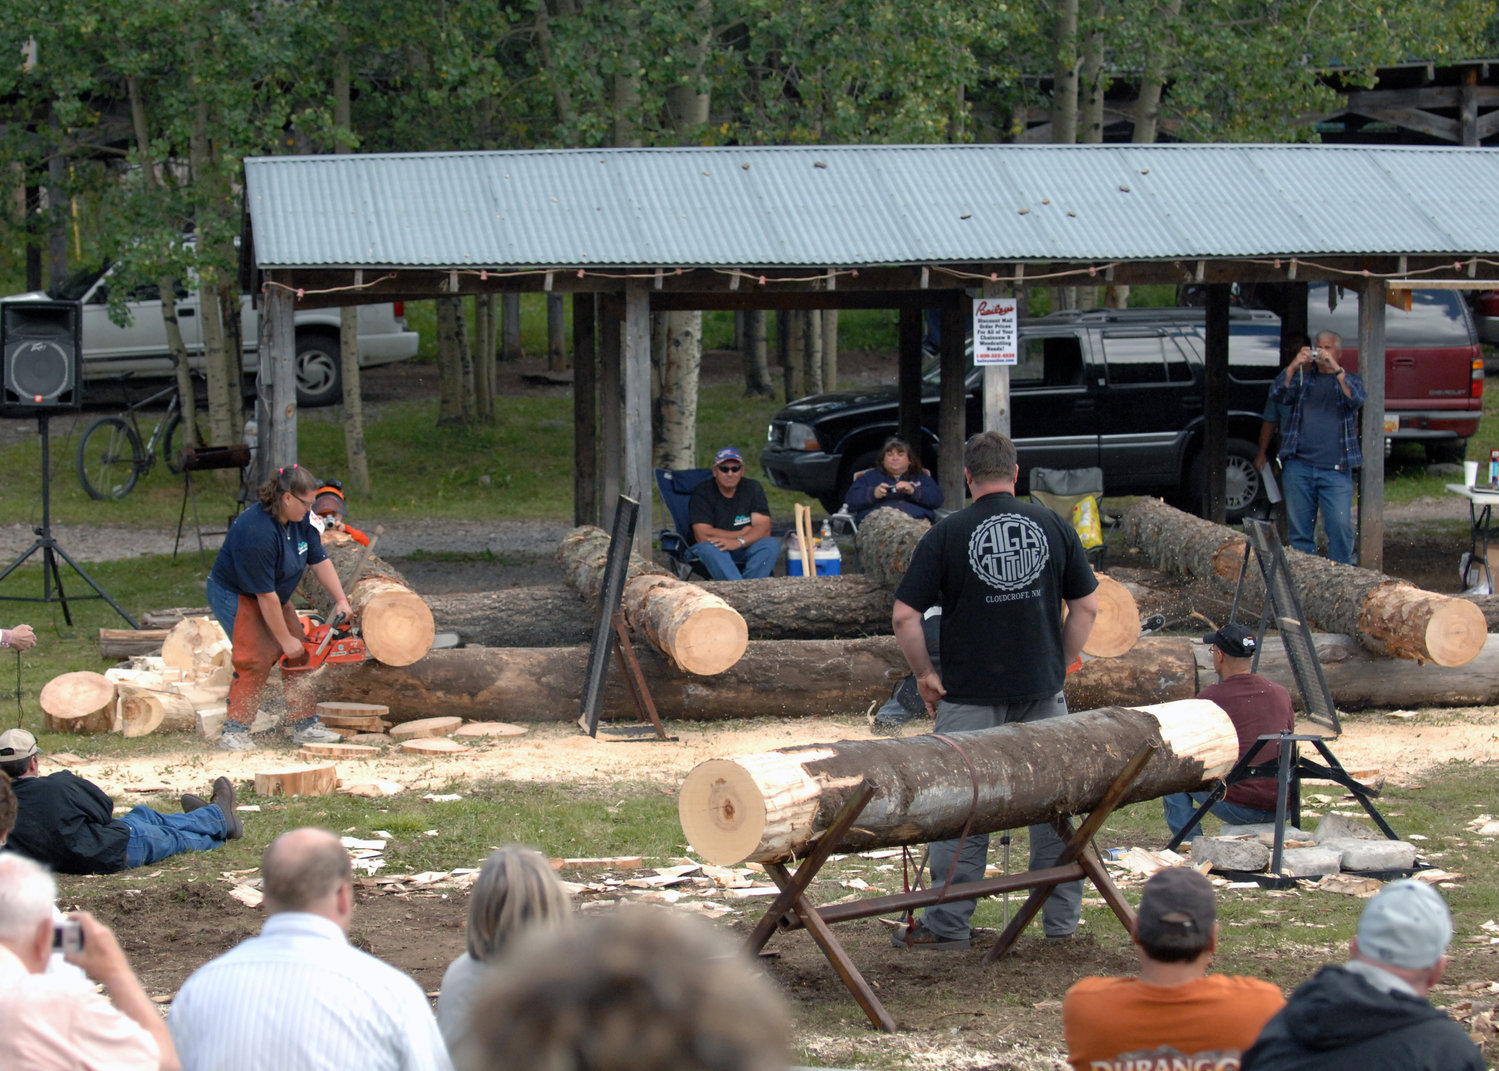 Dana Lenzo, competitor in Lumberjack Day, chops off pieces of pinewood at Zenith park in Cloudcroft, N.M., September 20. Judges and the audience watched as the lumberjack contestants competed in more than 18 events against one another to win first prize. This year Lumberjack Day is celebrated with contests and music Sept. 21.